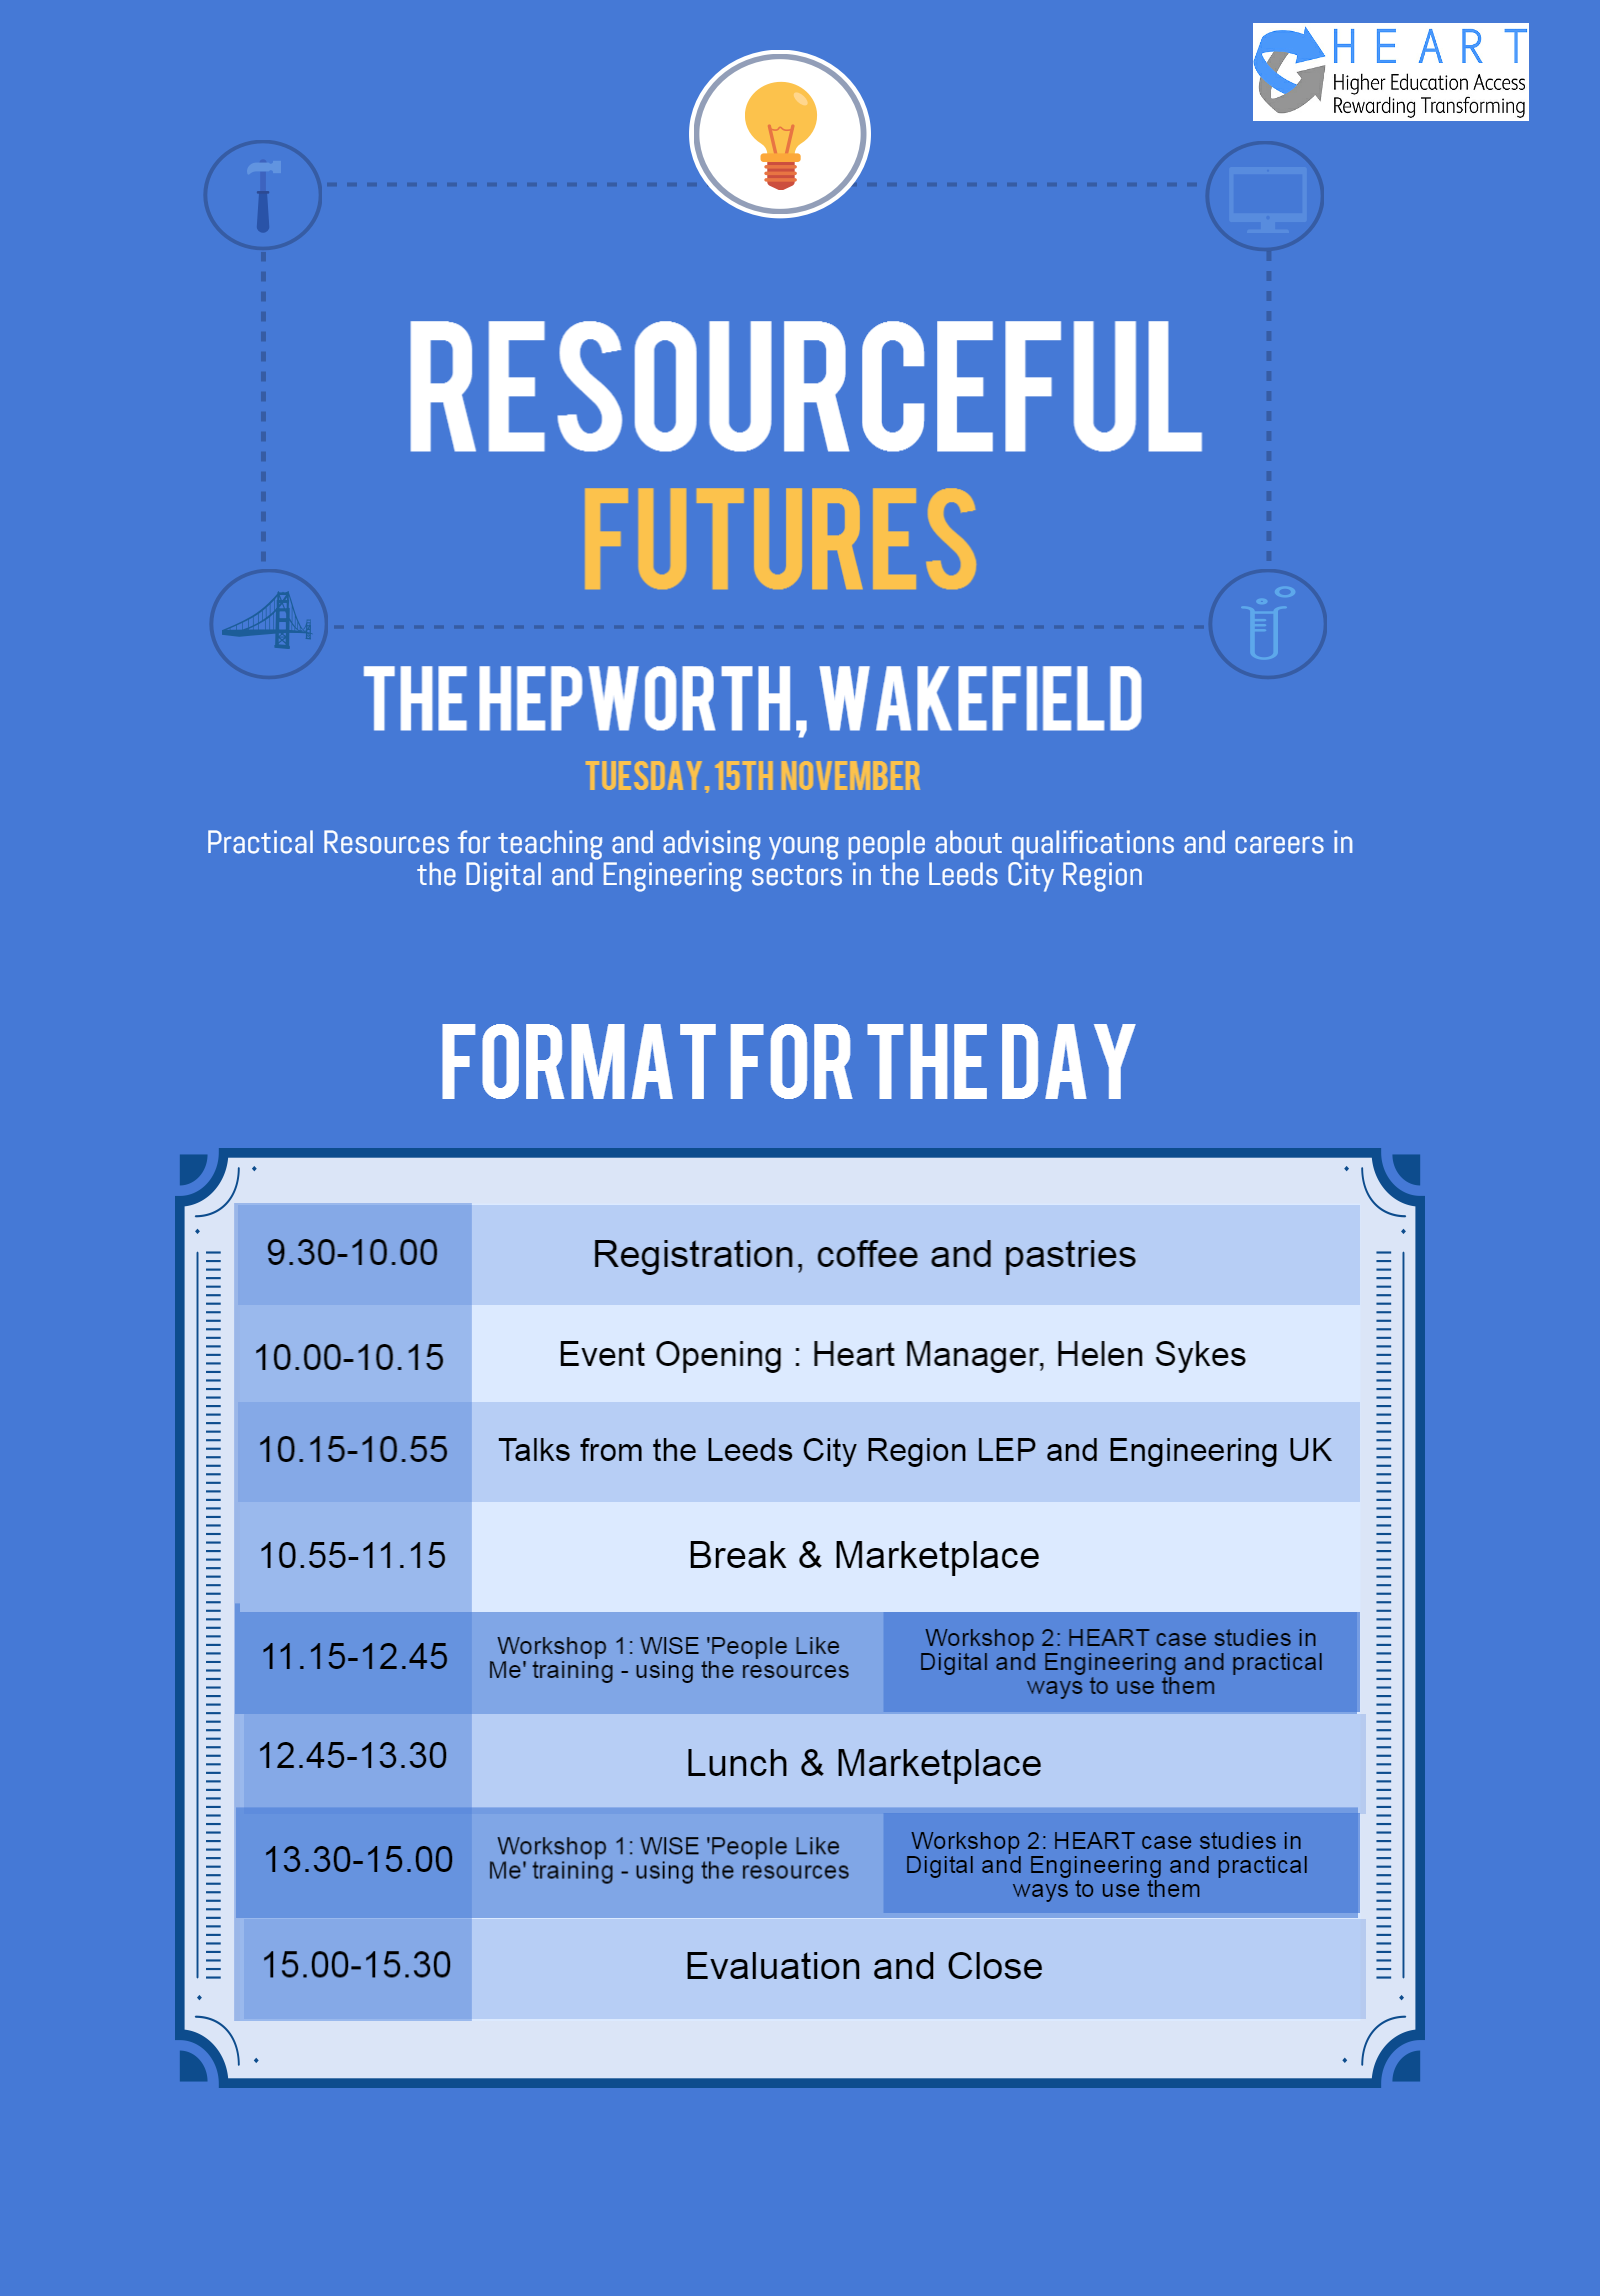 Agenda for the Resourceful Future day